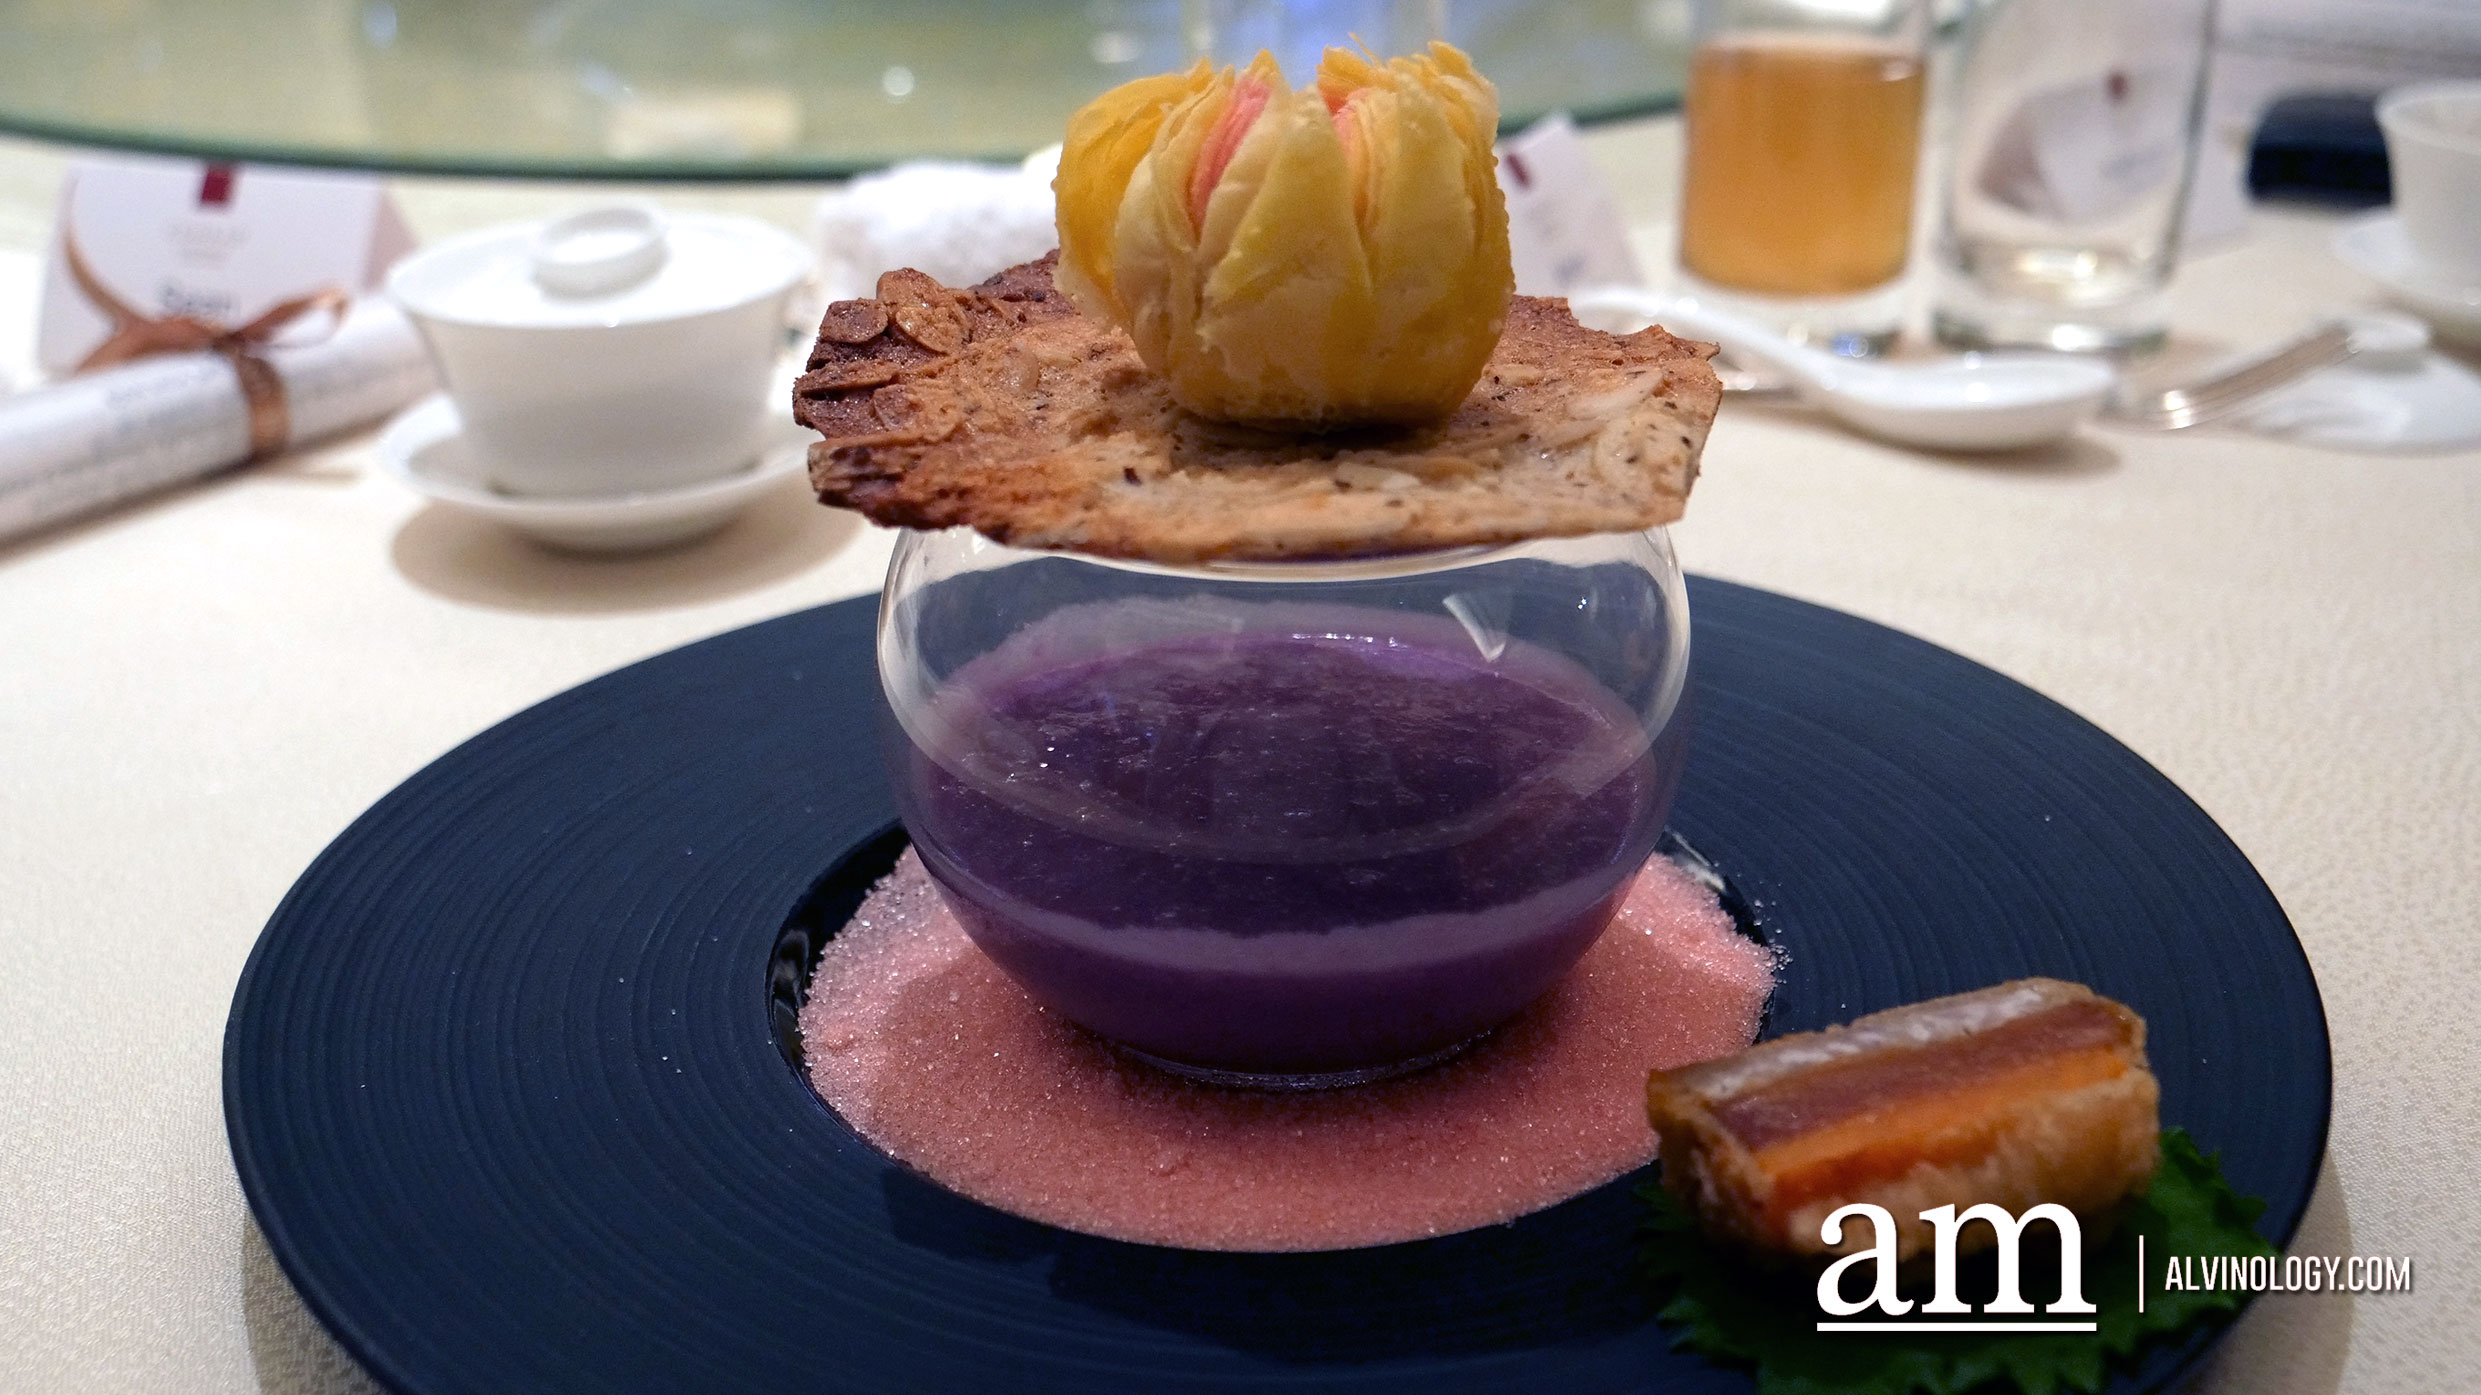 Crispy Jujube Pastry, Japanese Sweet Potato Puree with Pearls, Fried Nian Gao with Sweet Potato and Taro